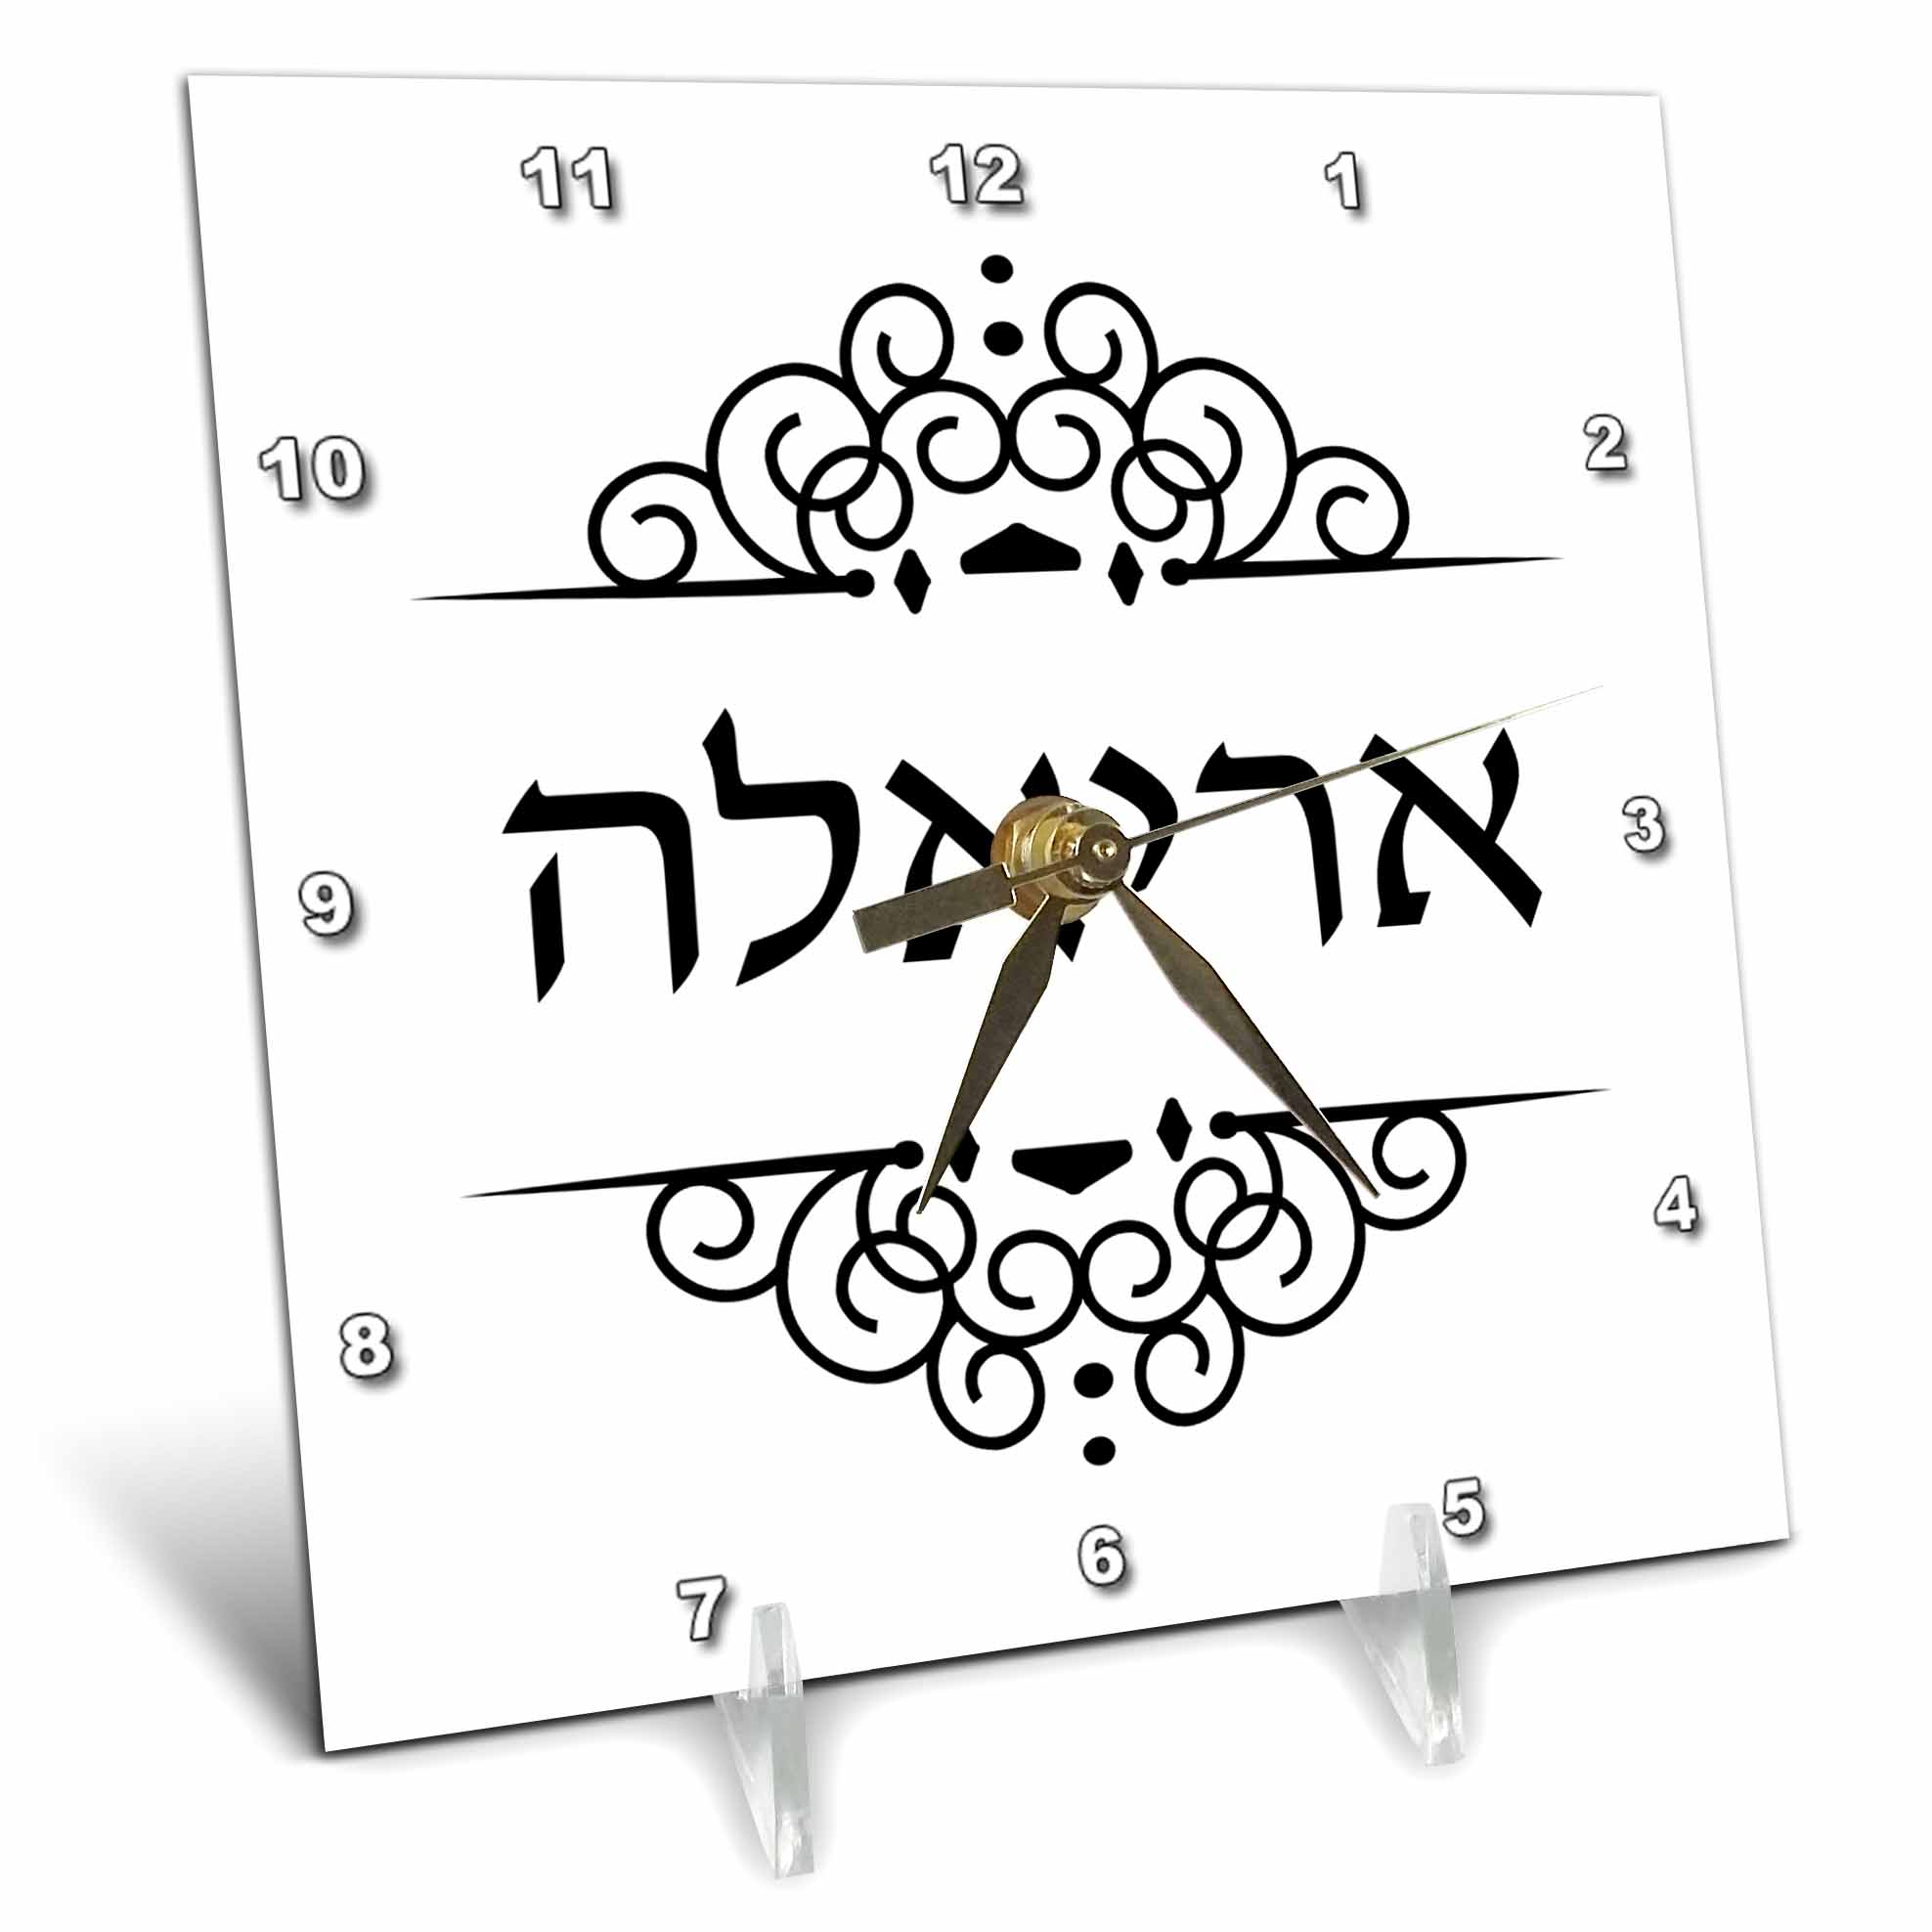 3dRose Hebrew Names Ariella personalized black and white fancy ivrit text, Desk Clock, 6 by 6-inch by 3dRose